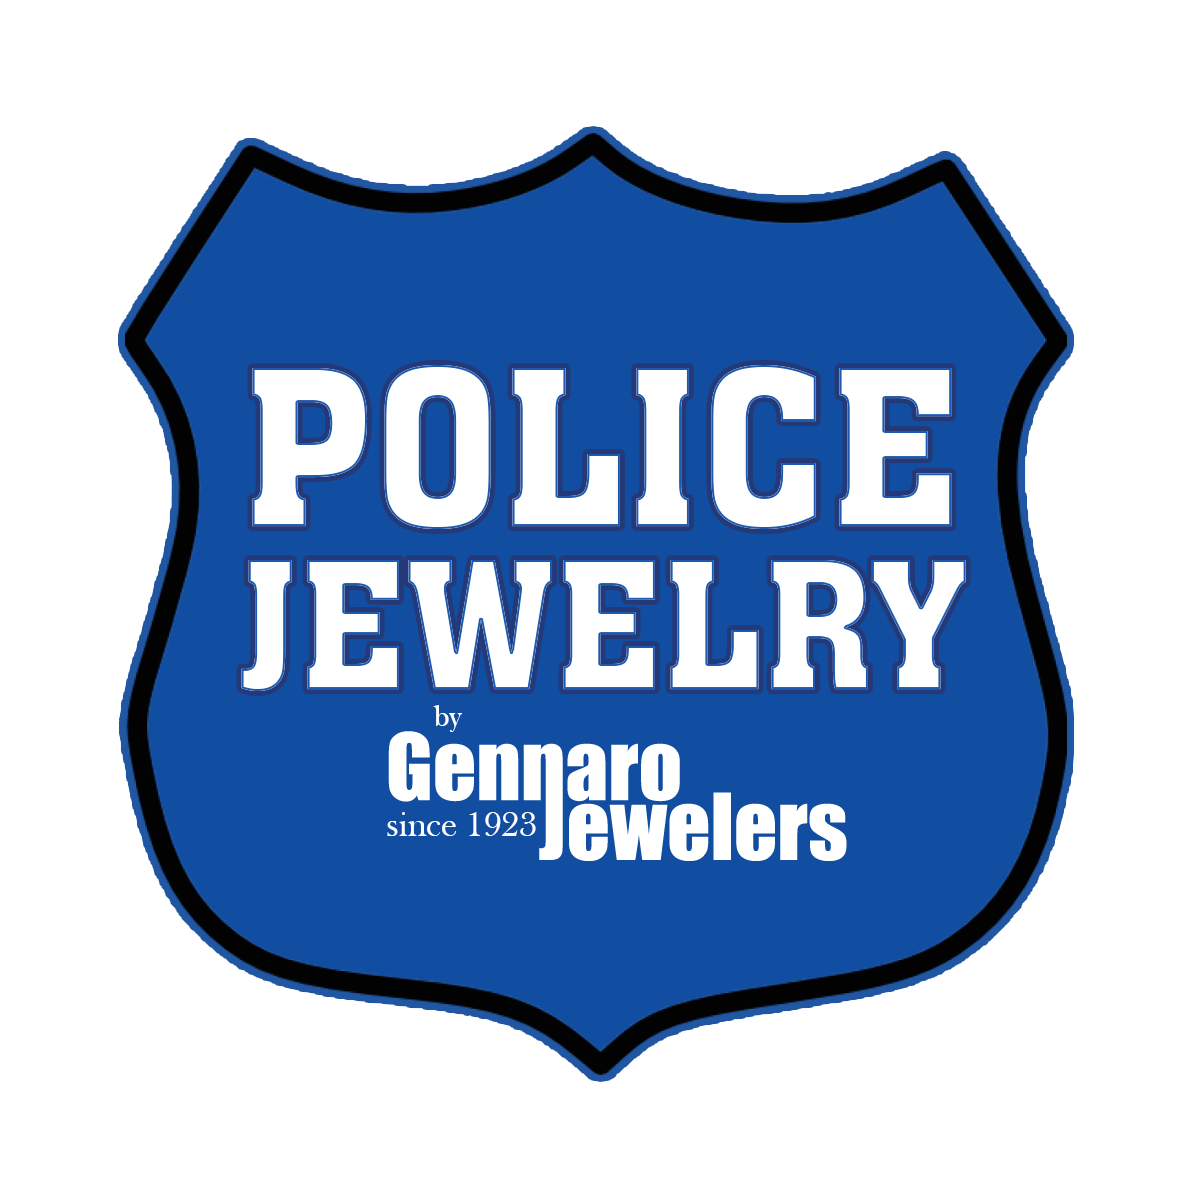 Police Jewelry by Gennaro Jewelers